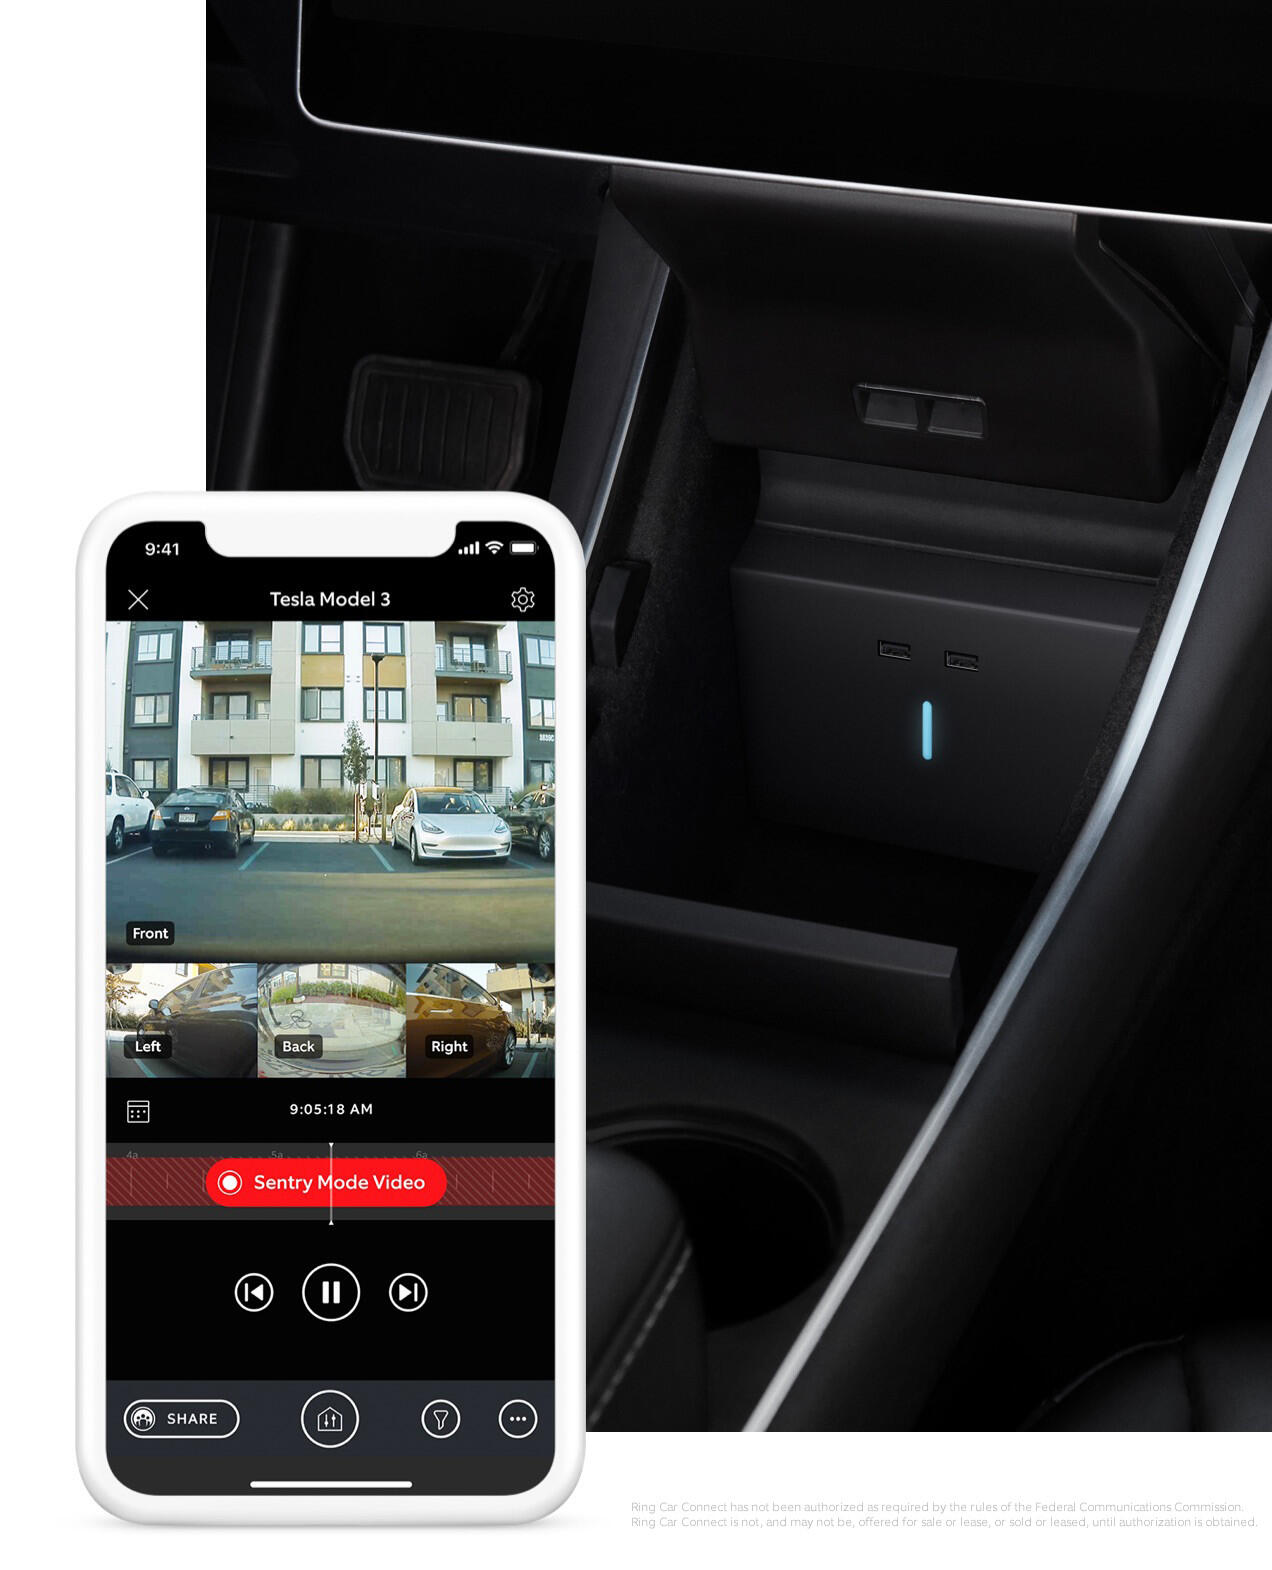 The Ring Car Connect app